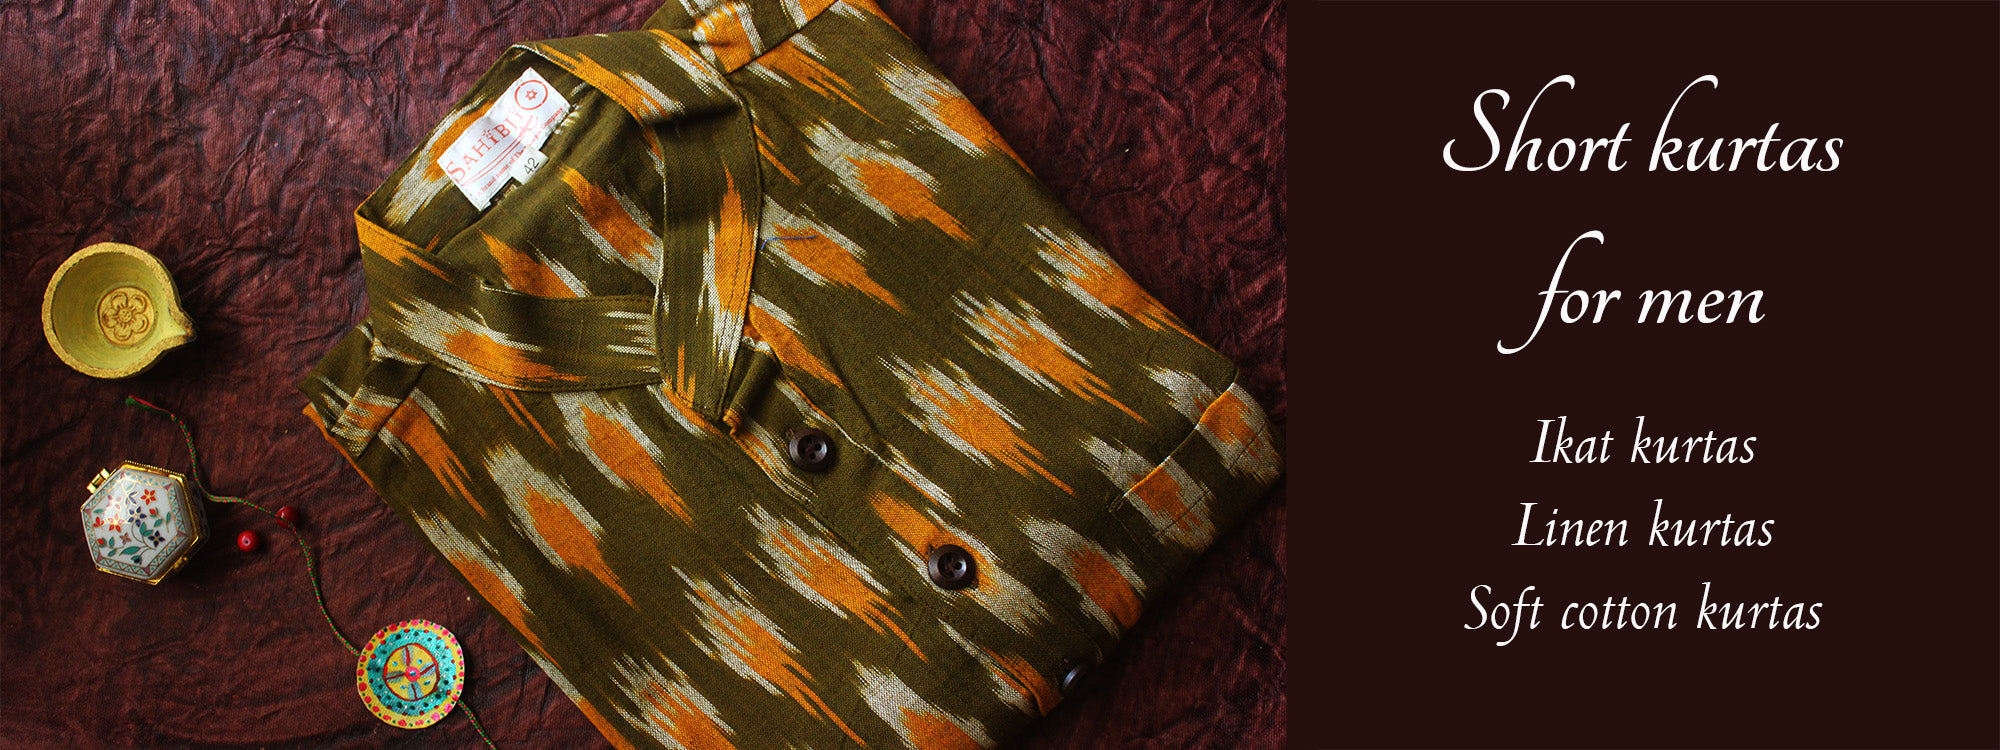 Short kurtas for men. Ikat kurtas for men. Cotton kurtas for men.